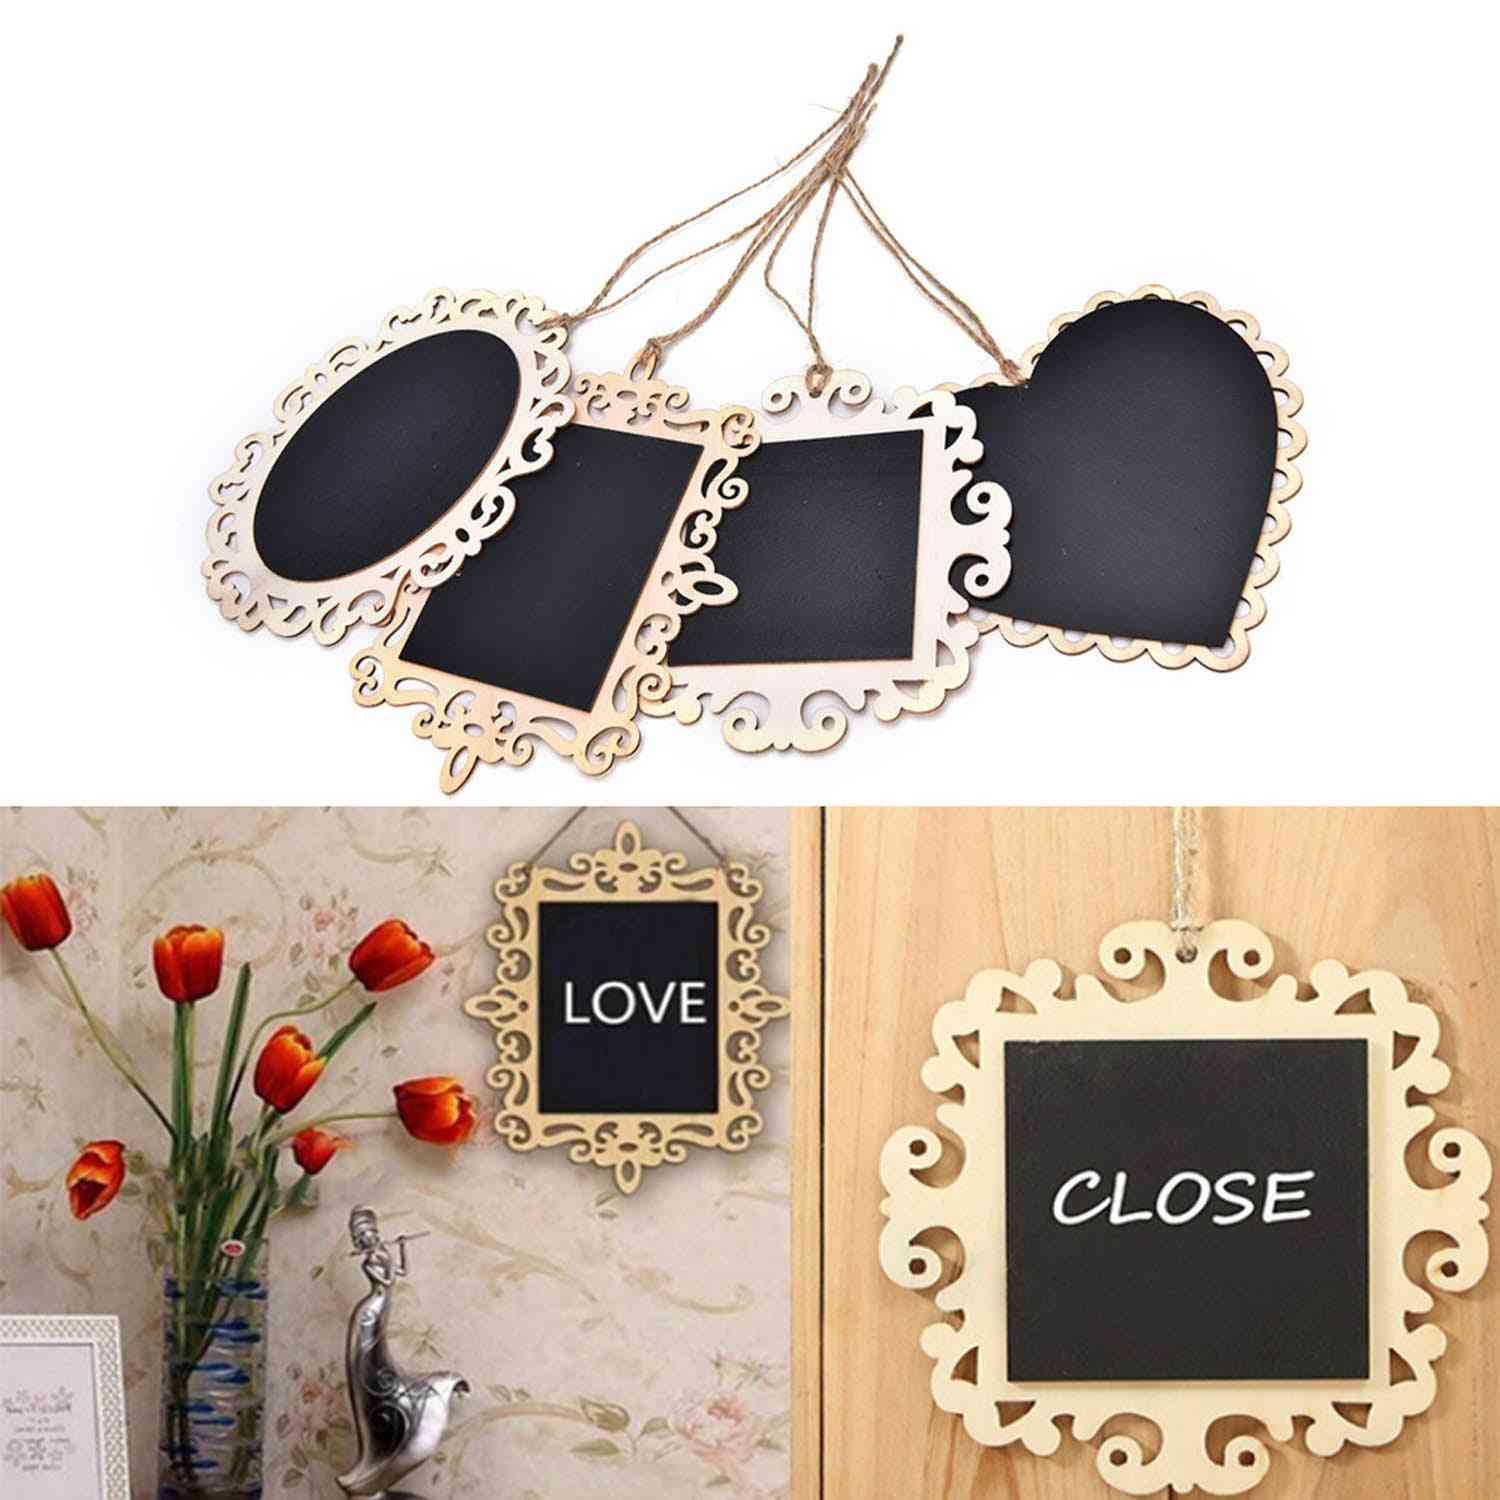 Hanging Mini Wood Blackboards, Chalkboards, Message Signs Boards For Wedding, Party, Home Decor